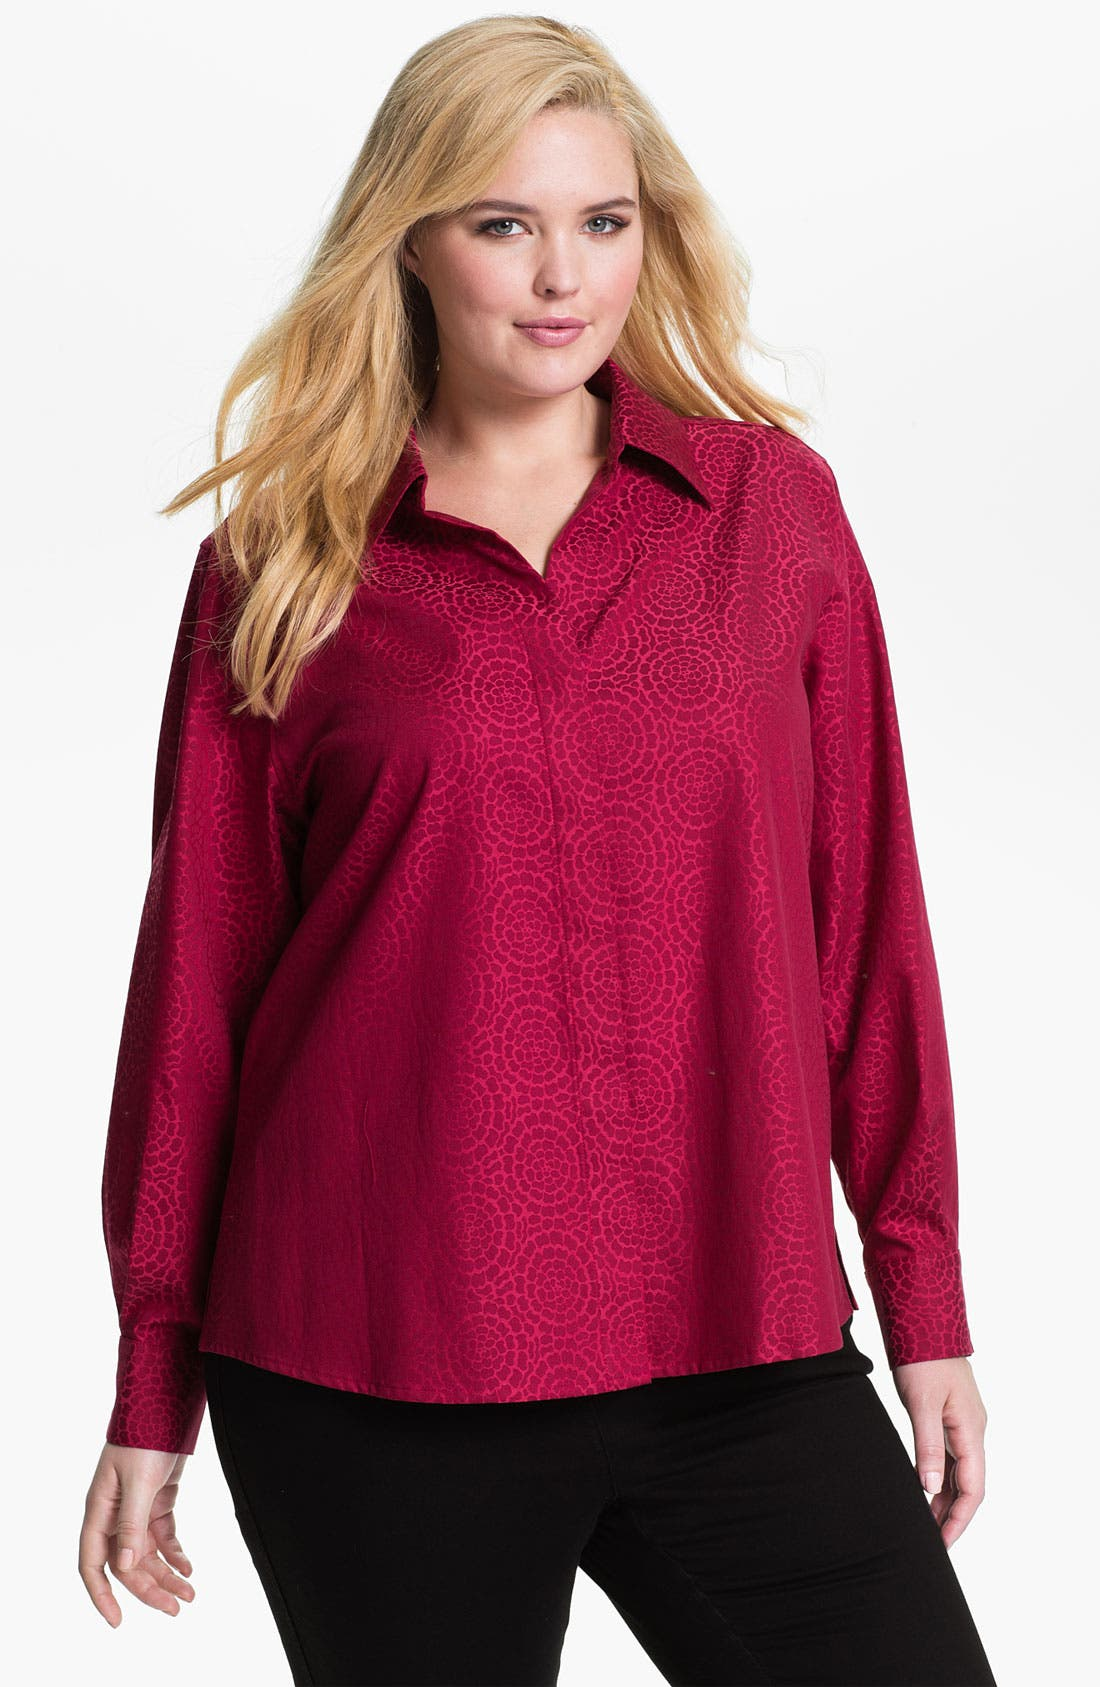 Alternate Image 1 Selected - Foxcroft 'Chrysanthemum' Wrinkle Free Shaped Shirt (Plus)